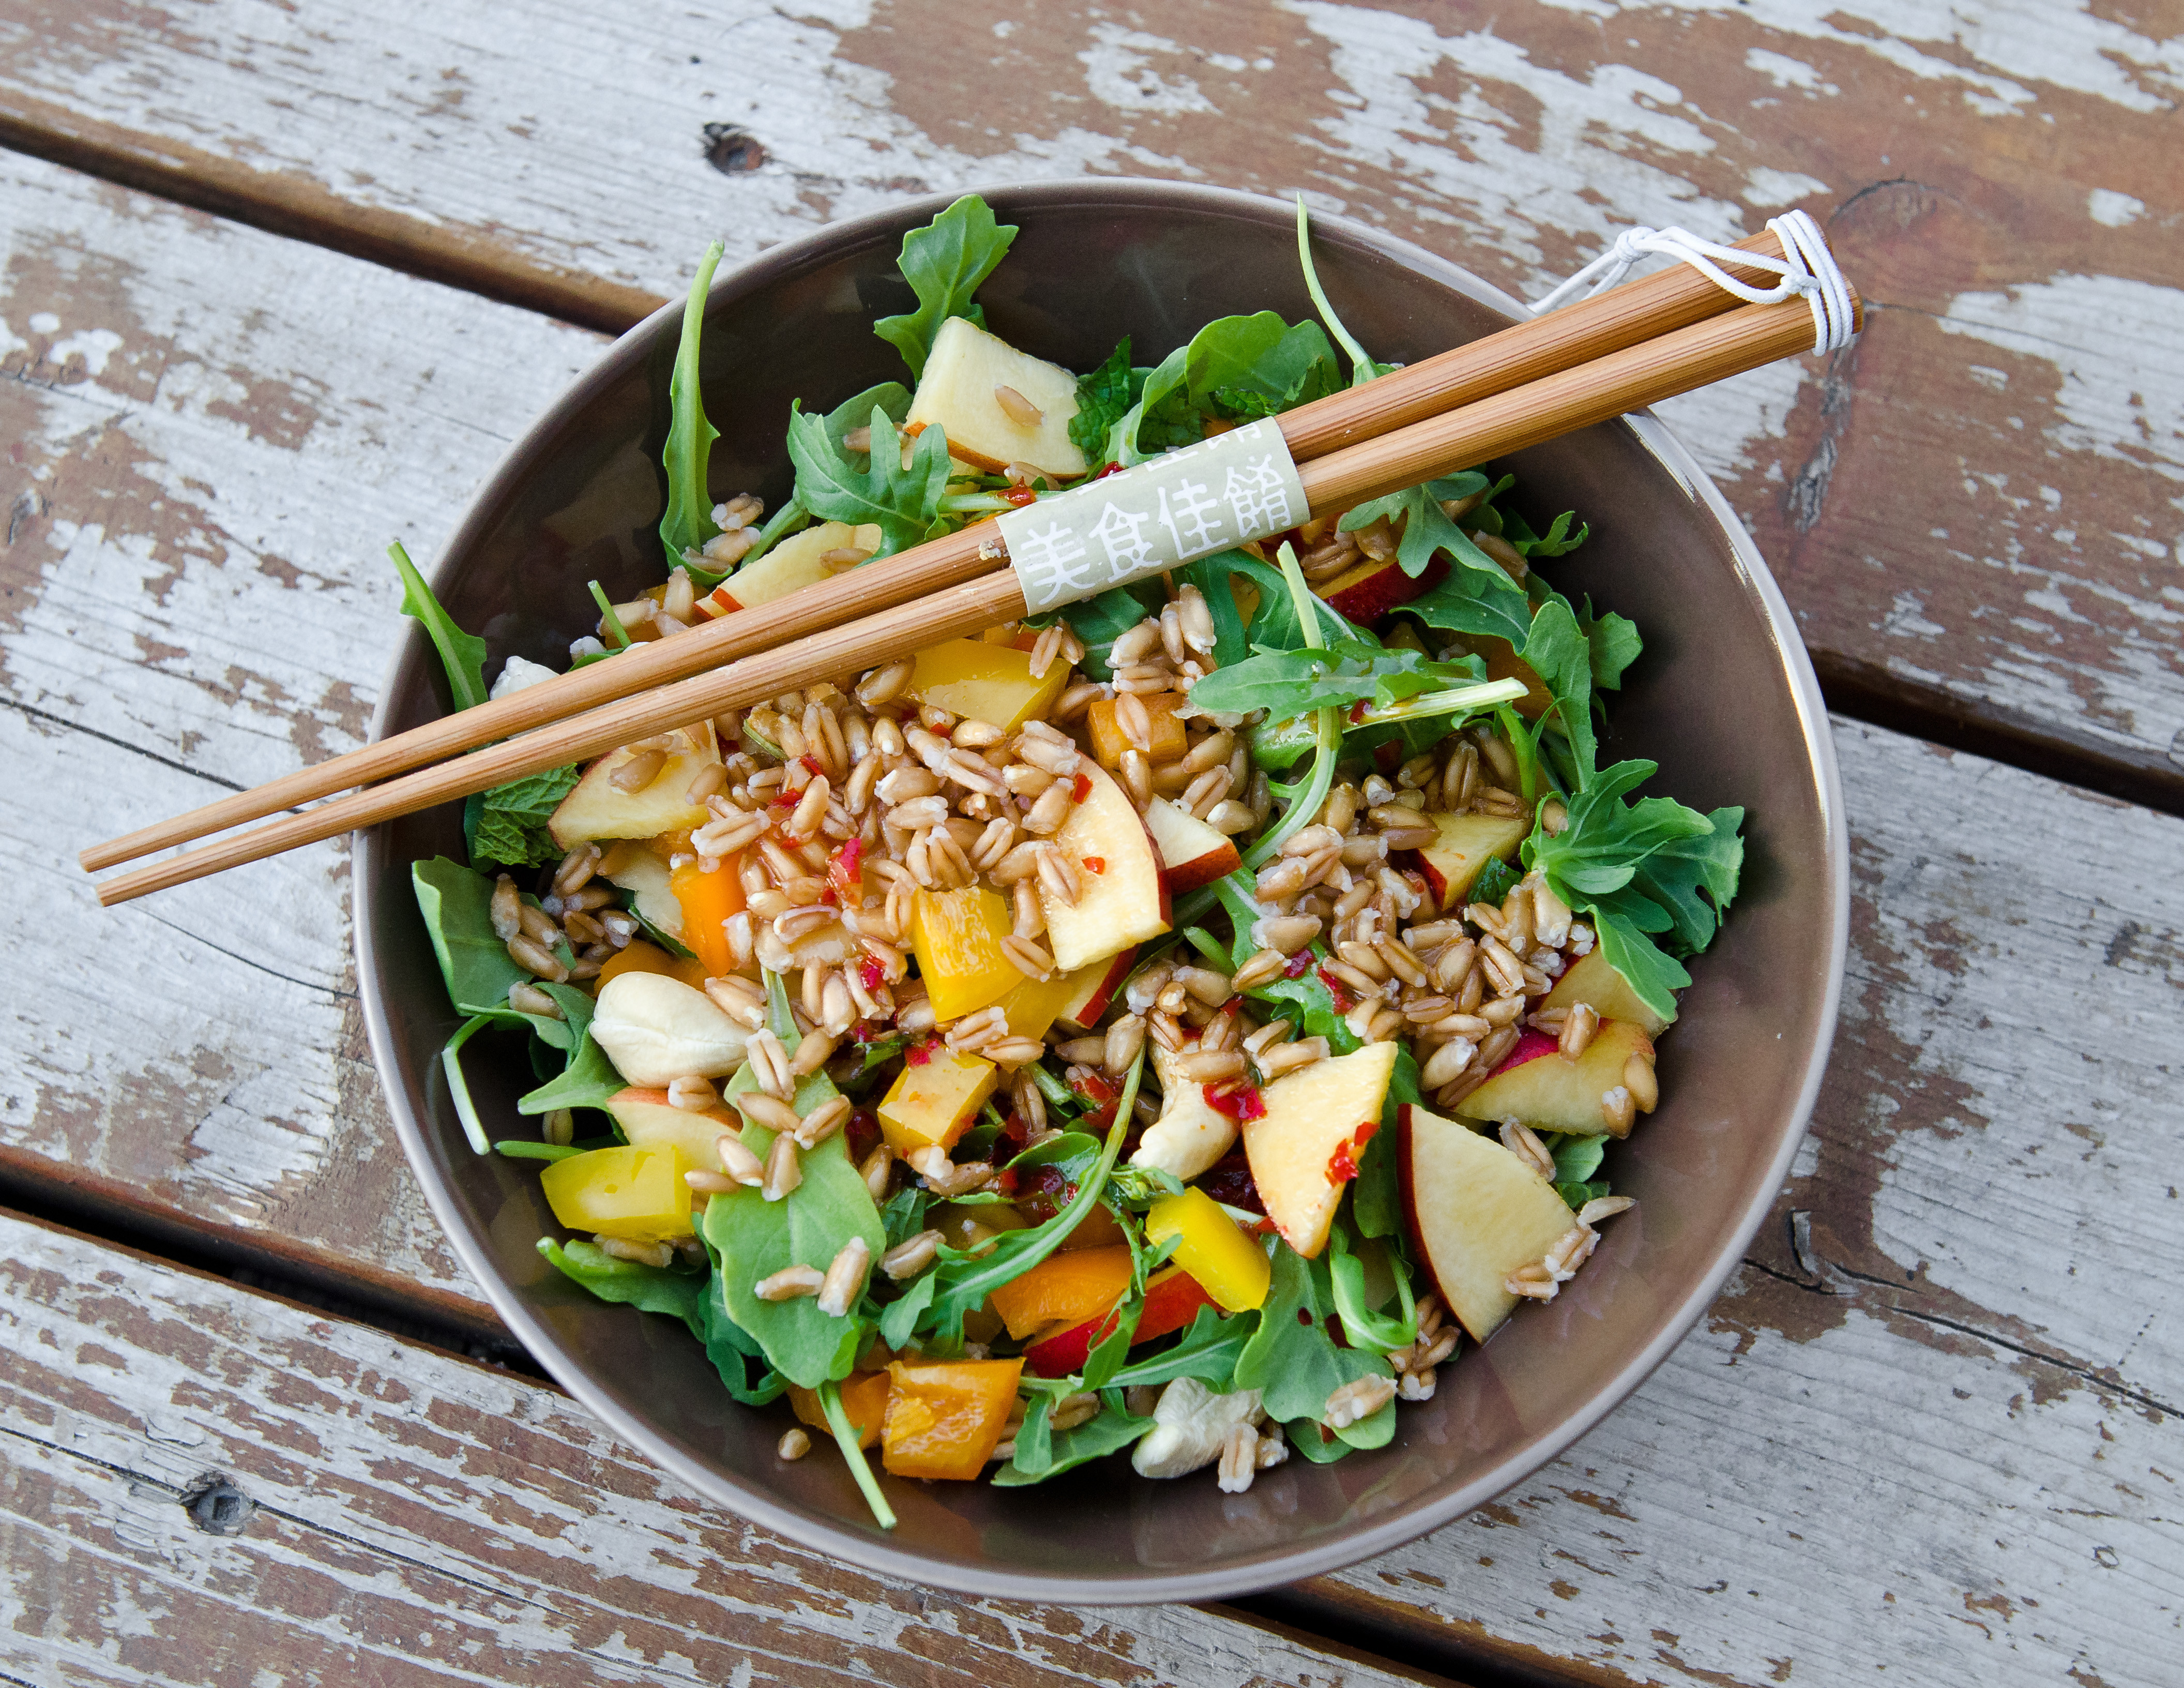 Healthy Vegan Lunch Recipes  30 Healthy Ve arian Lunch Ideas The Fig Tree